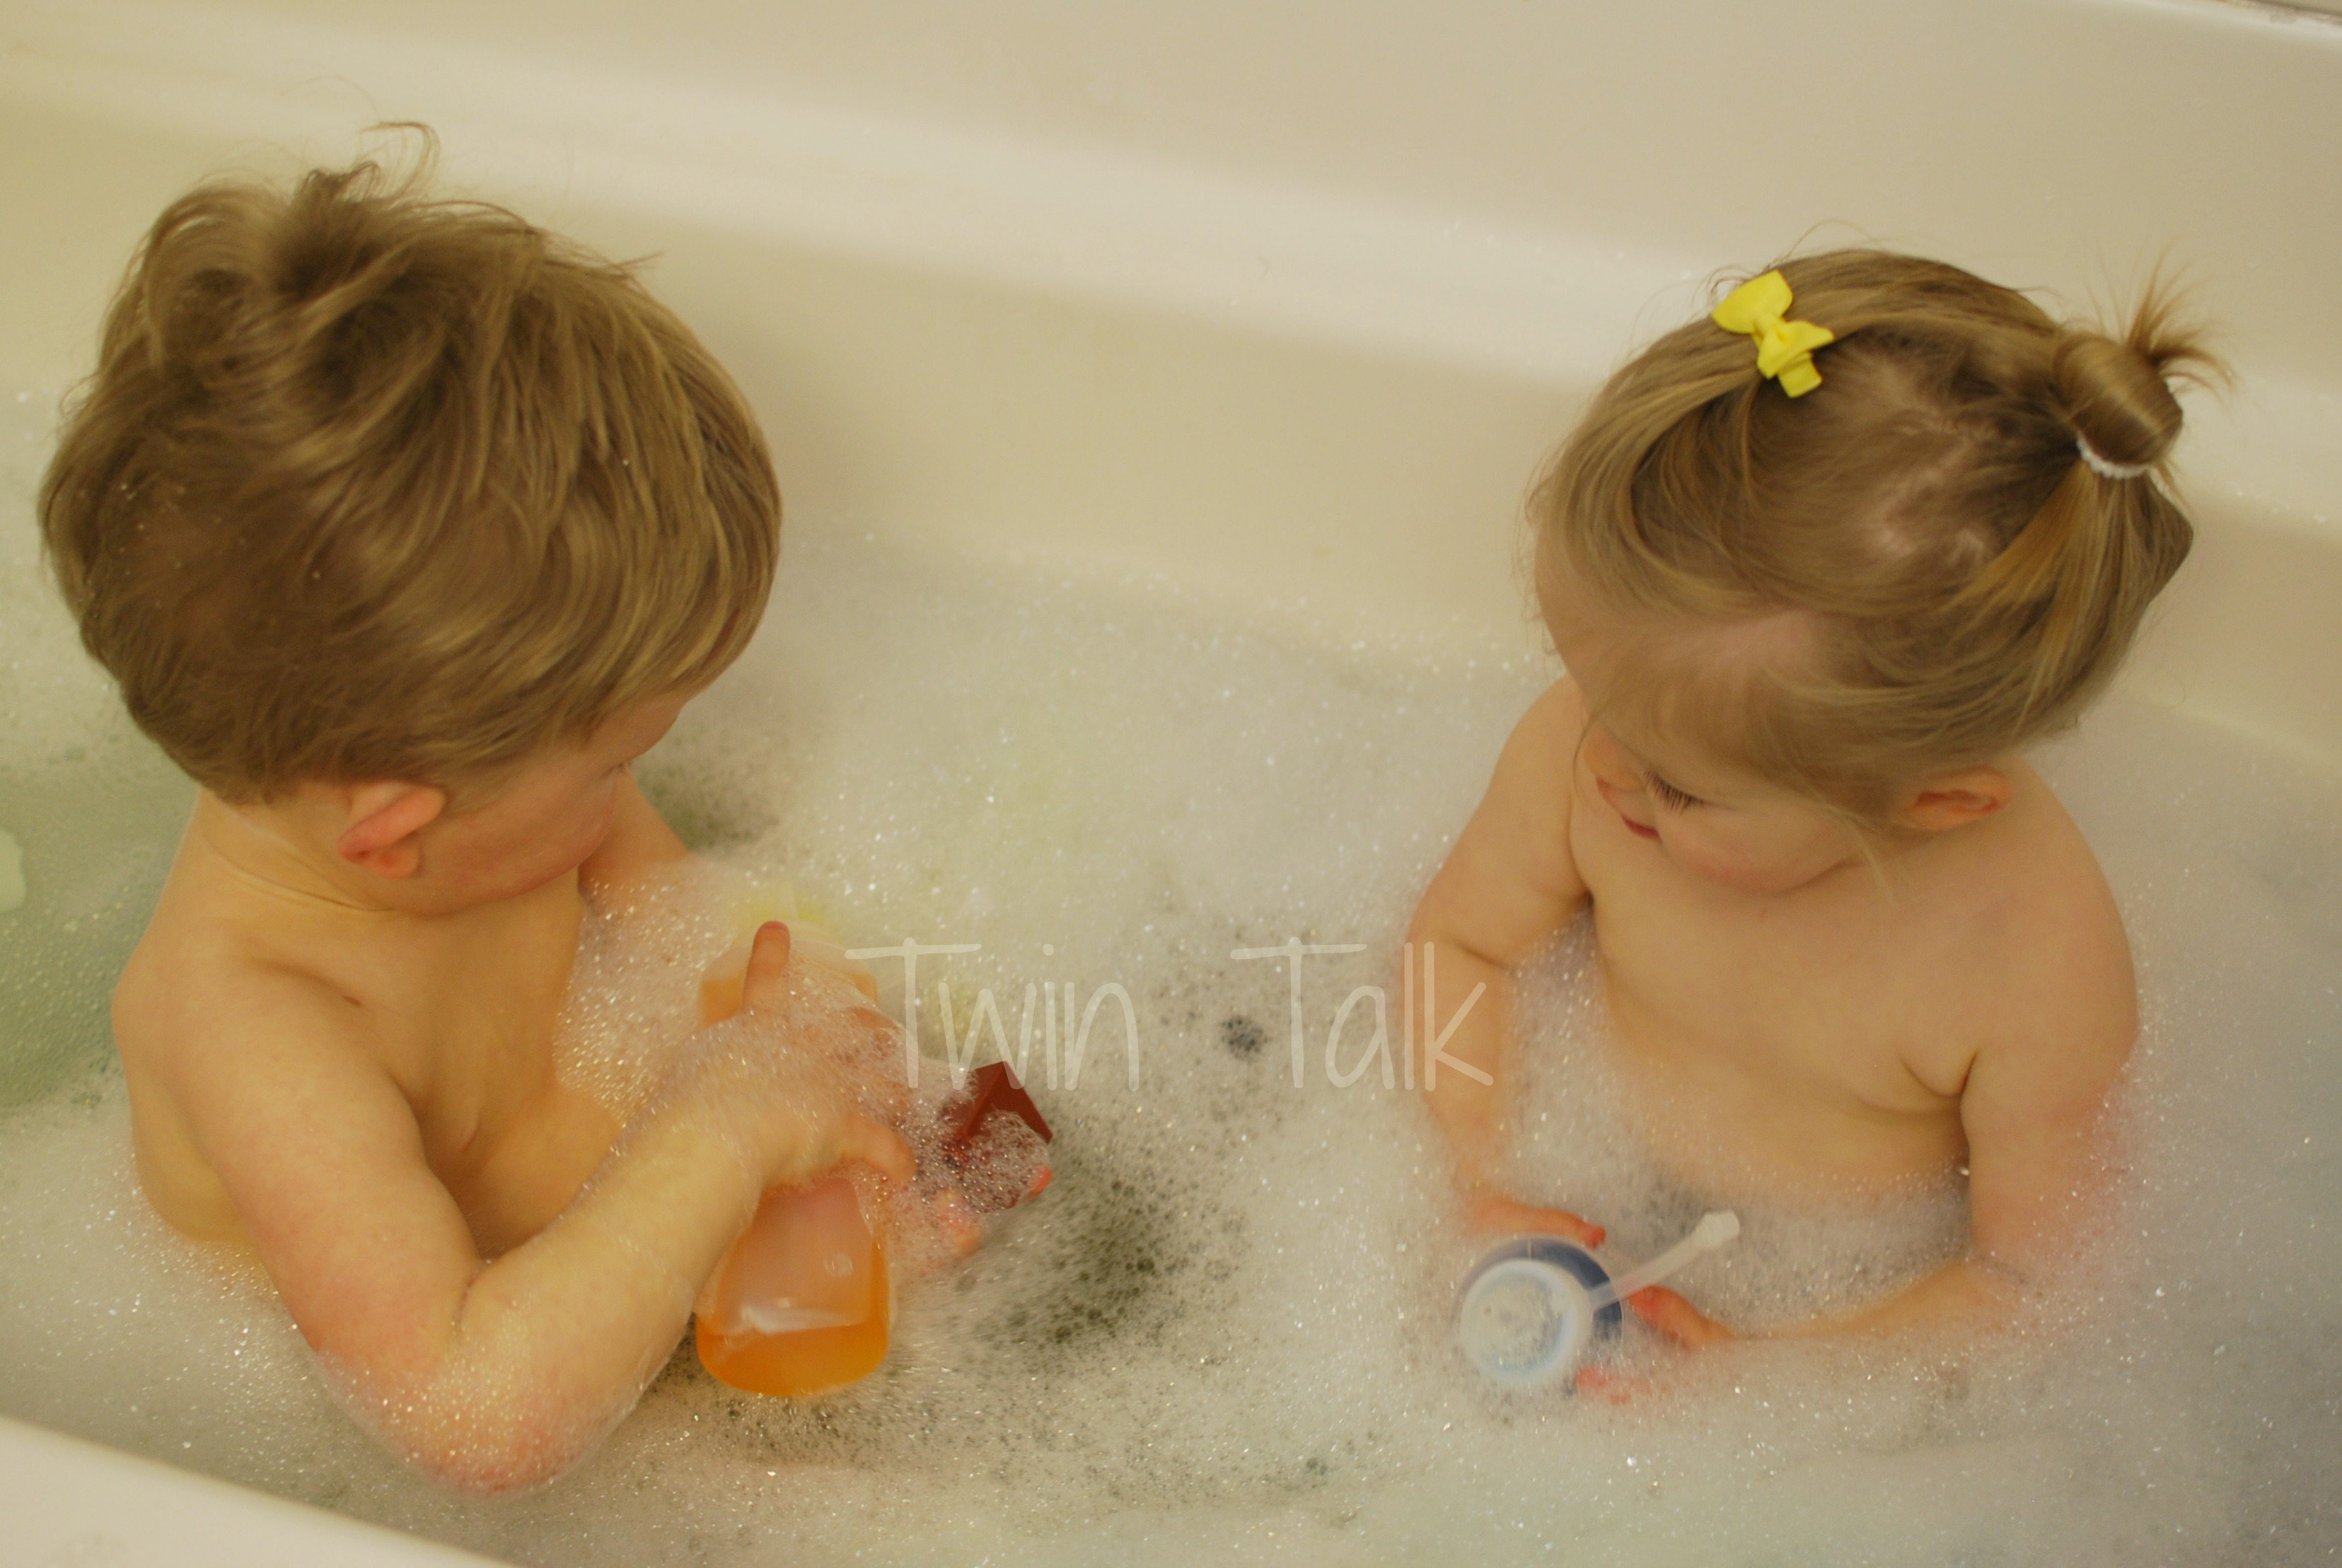 Cheap and easy activities for toddlers – Twin Talk